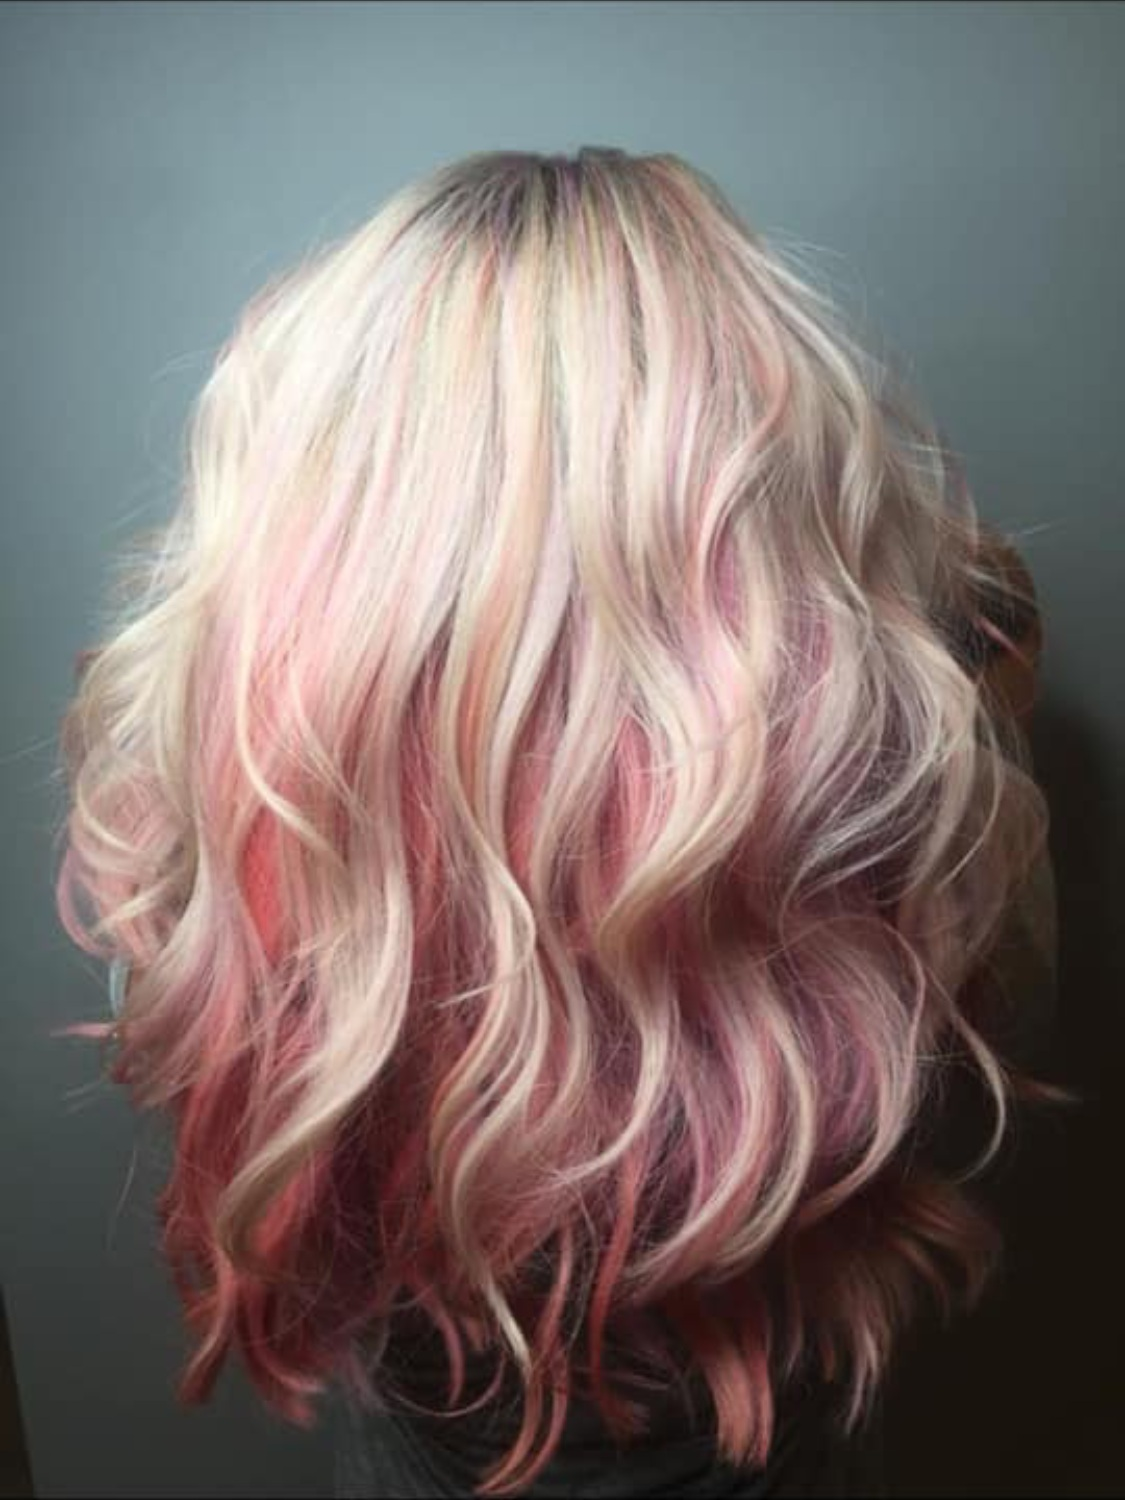 Rebecca Crosby Stylist Artistik Edge Hair Salon Lake Highlands Texas Pink Hair.png